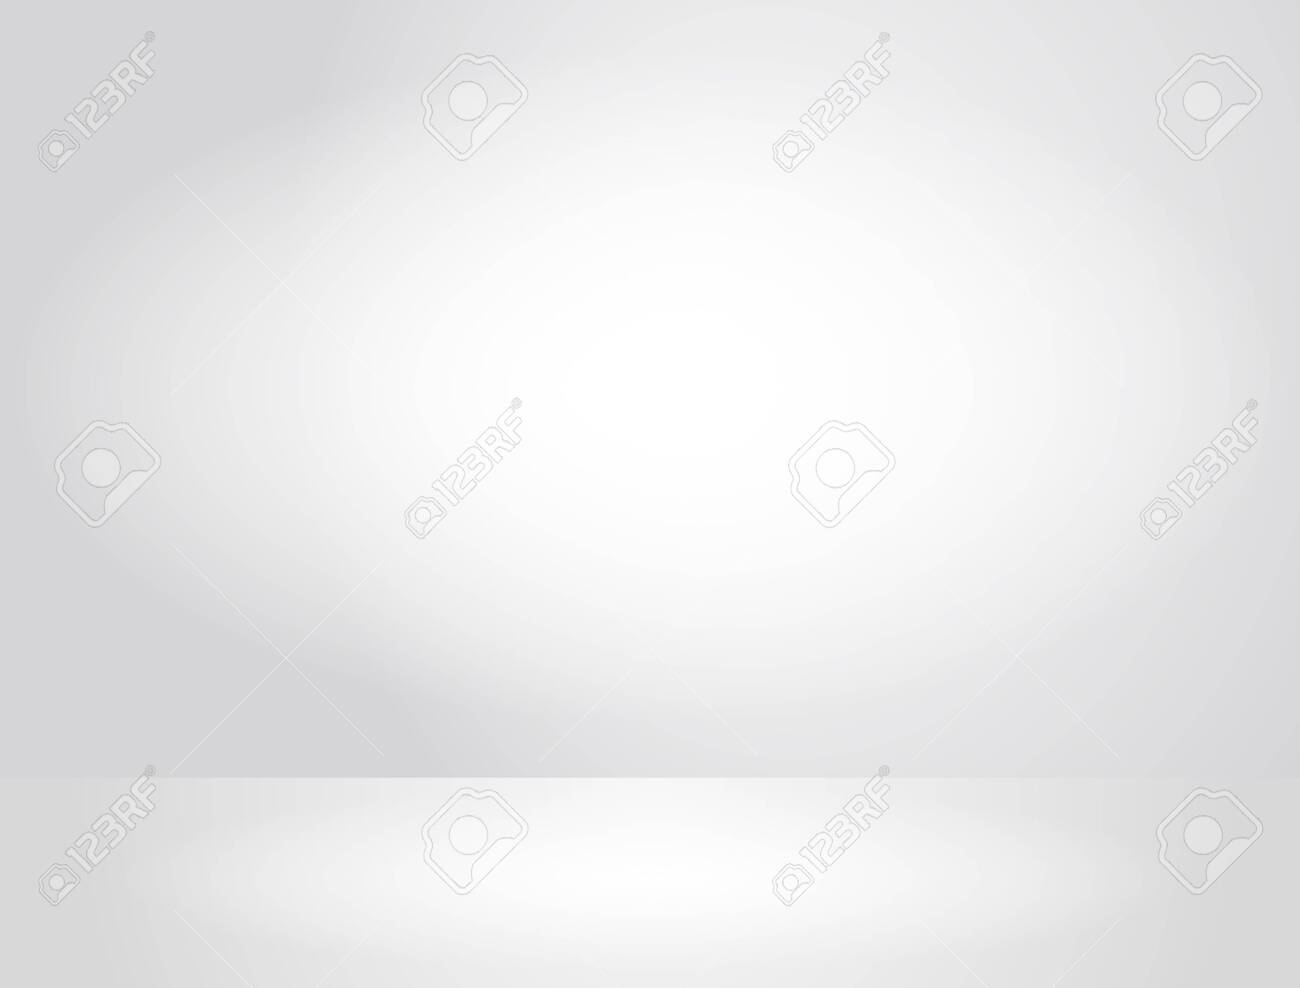 realistic template of a white wall and empty space with soft light. - 137682807